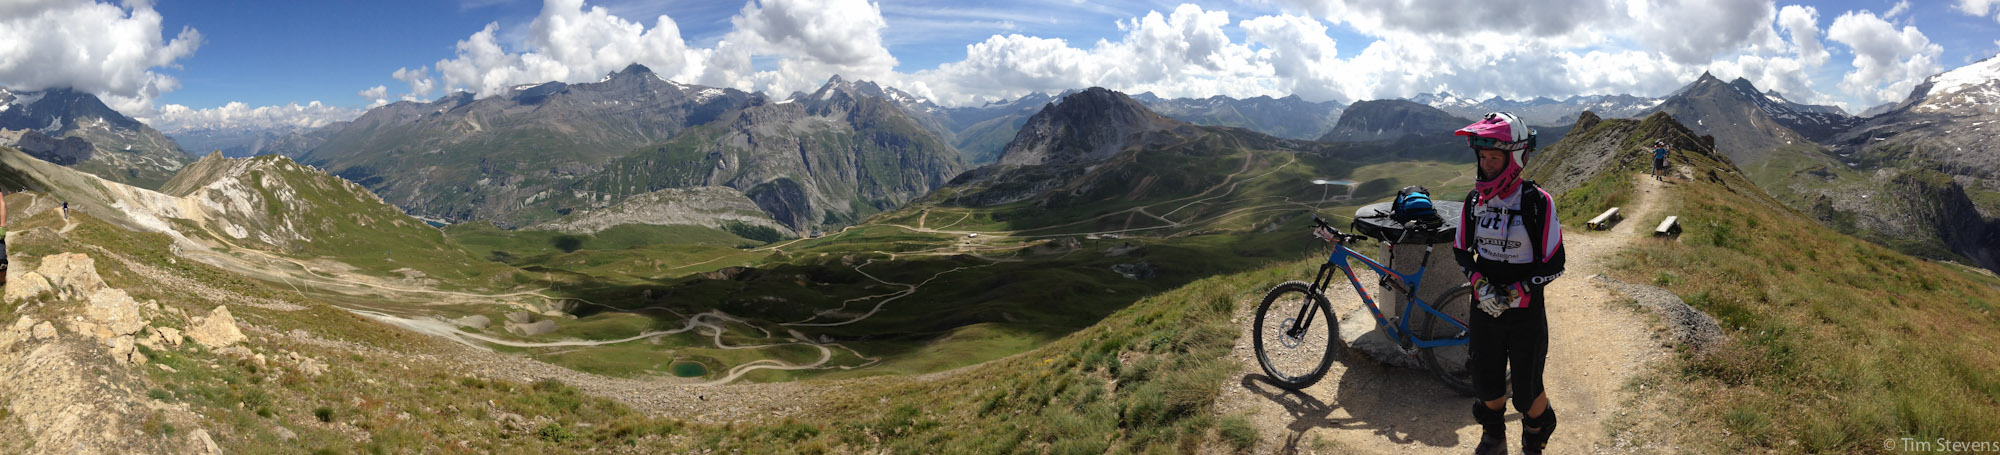 Day 1 of the Trans Savoie enduro race, Val D'Isere.